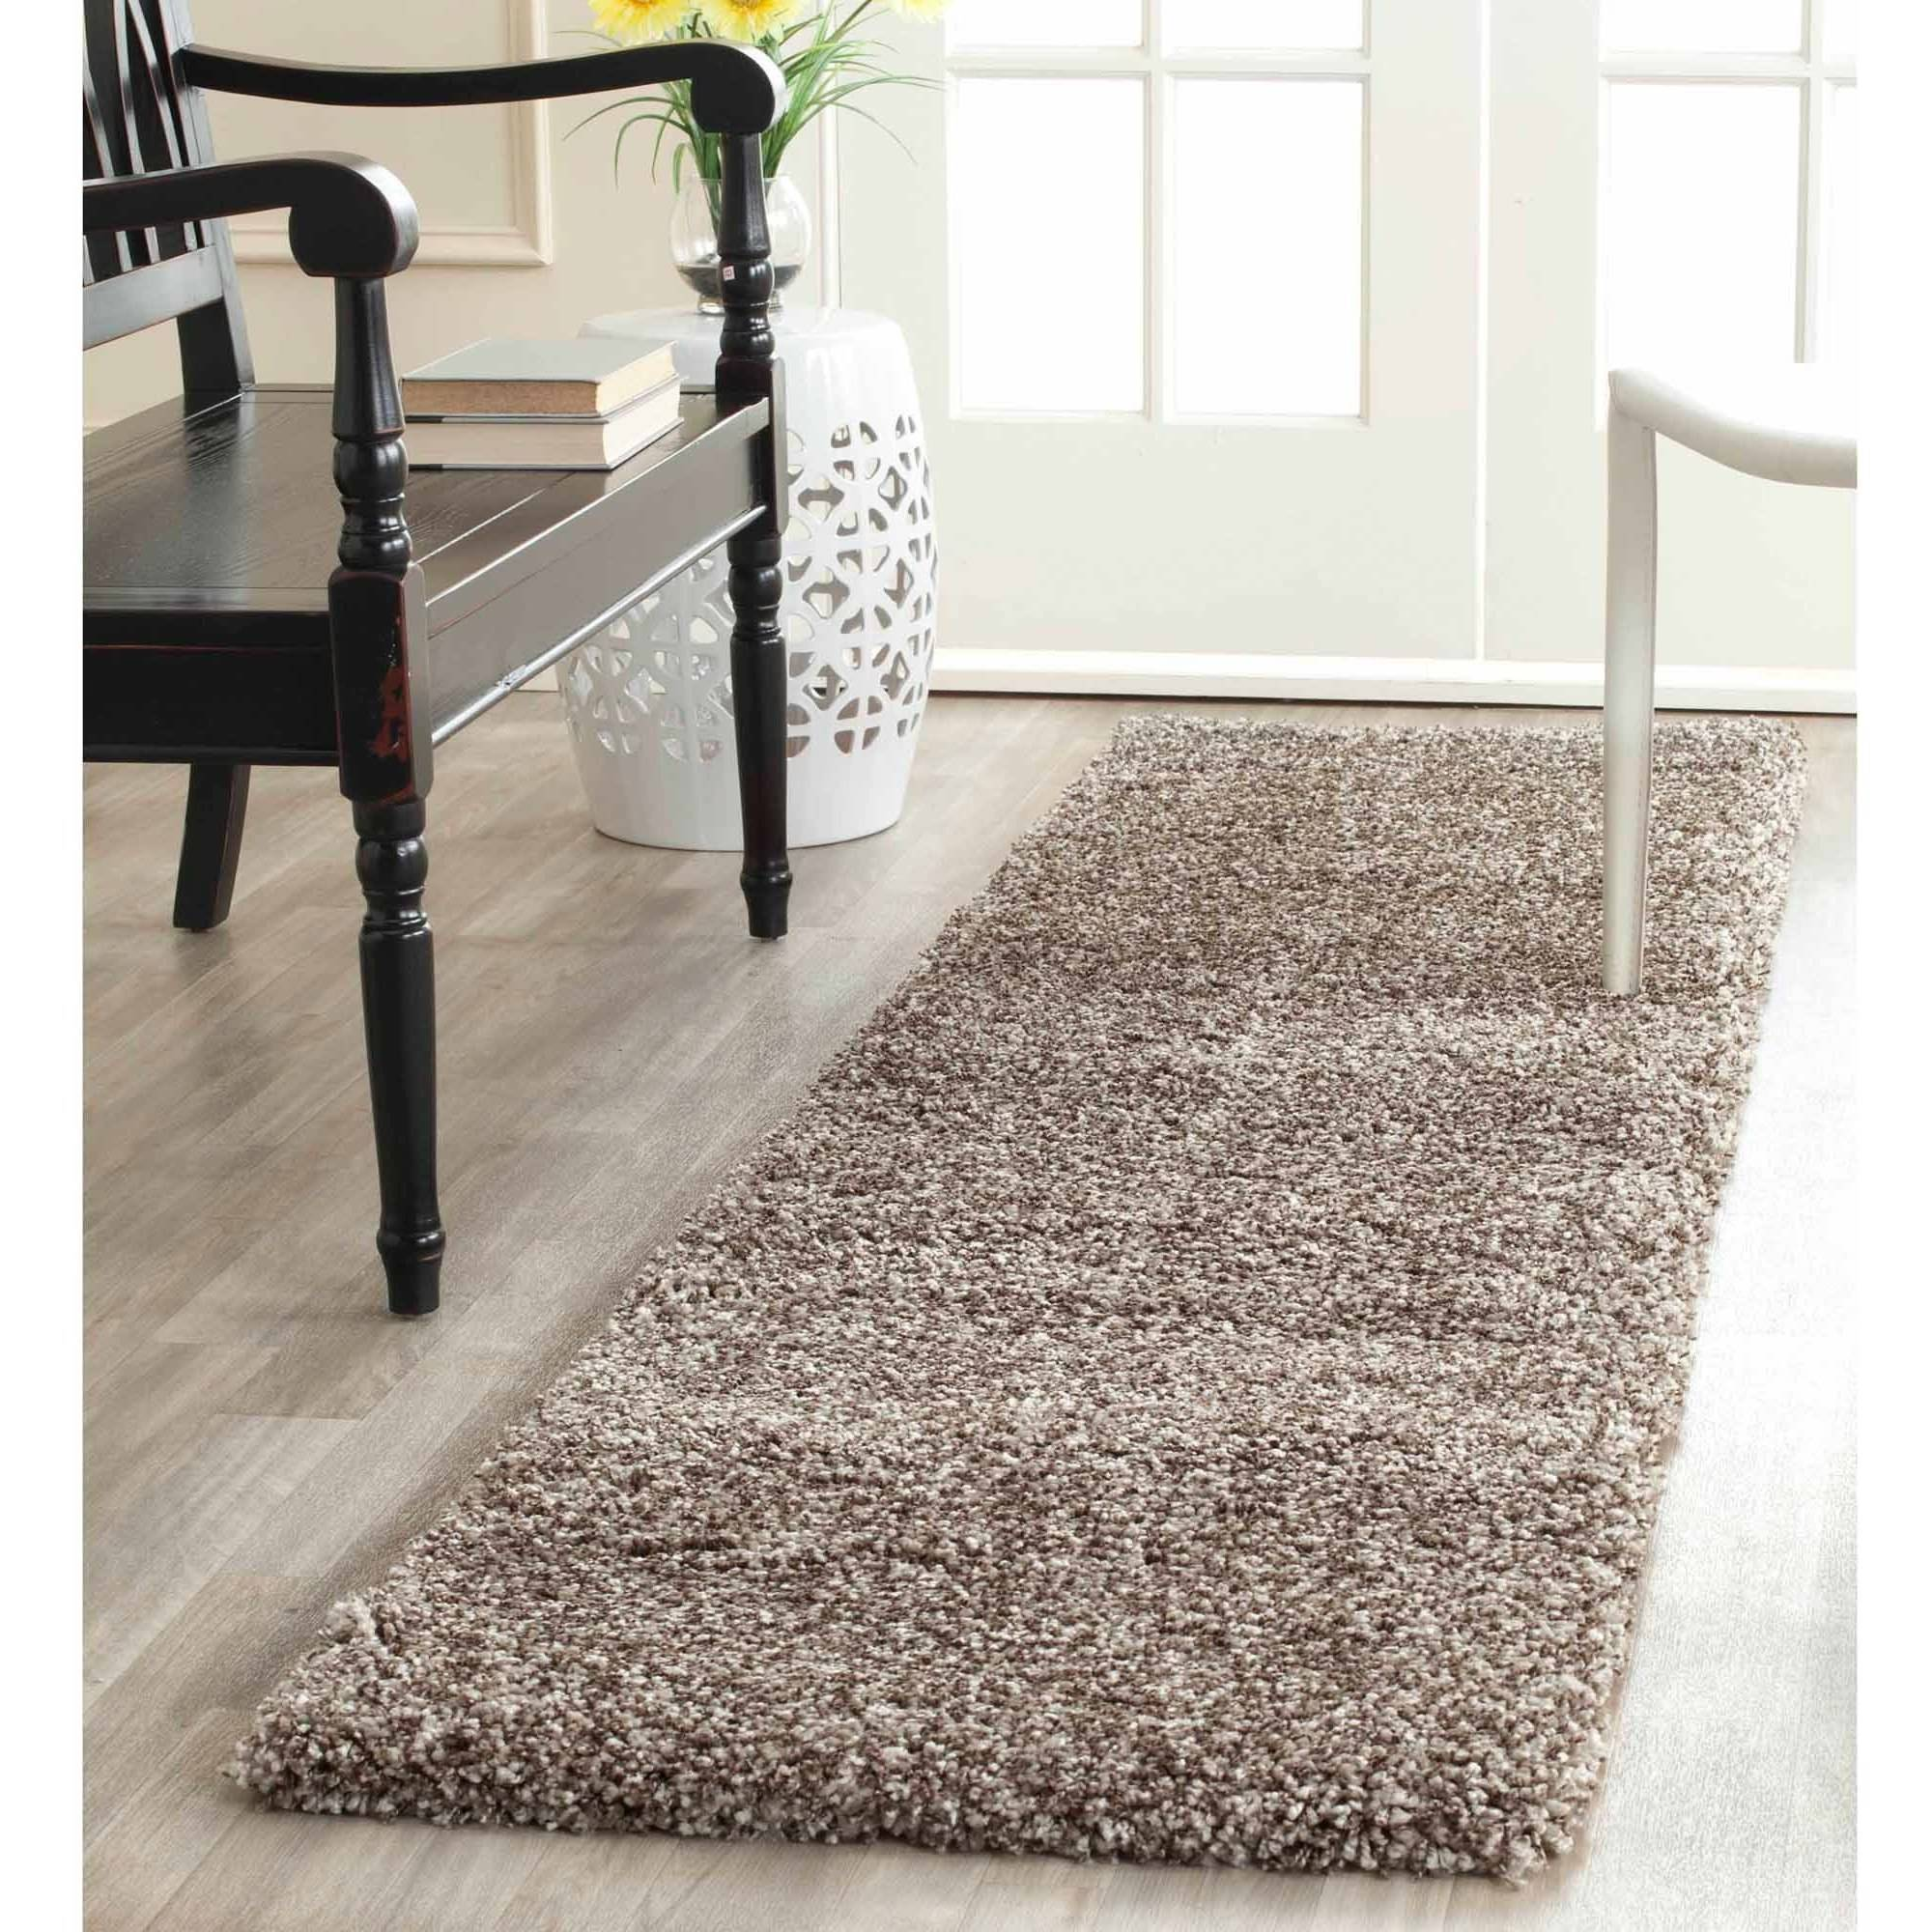 Luxury Flooring Combined with Maples Rugs make Your Home Look more Beautiful: Amazing Maples Rugs With Black Chair And White Chair